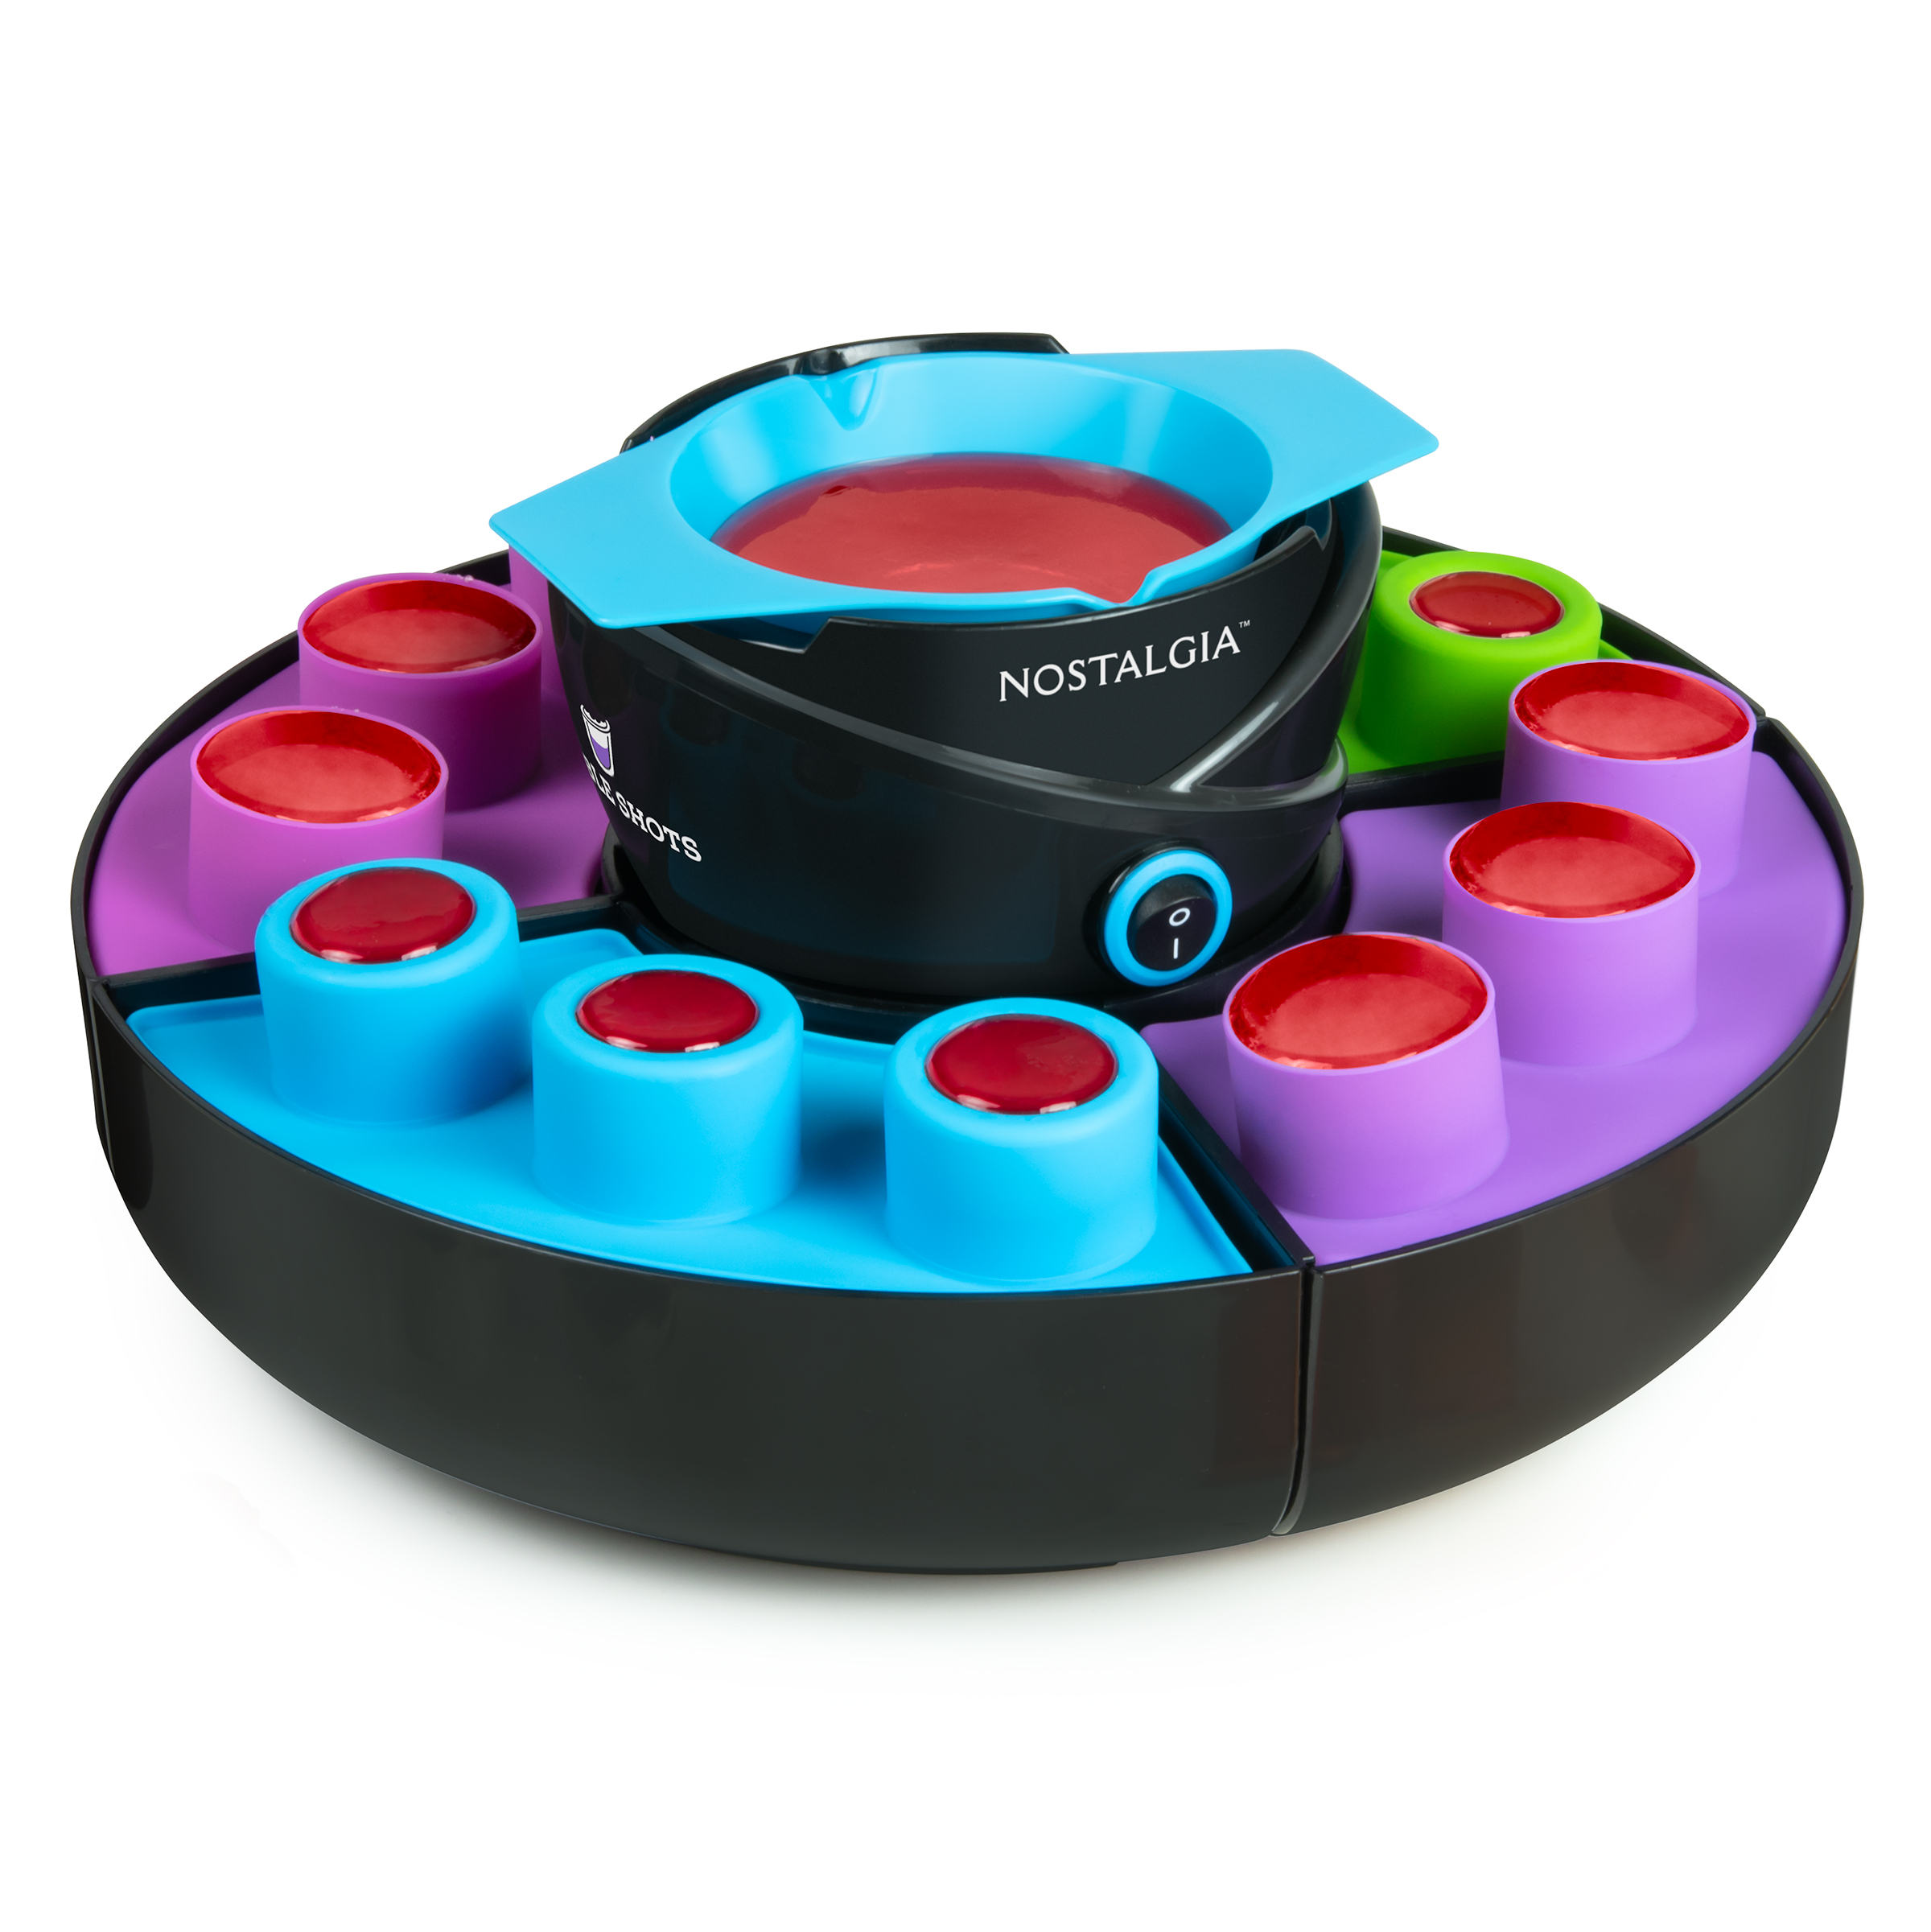 Nostalgia SM12 Edible Shot and Cup Maker